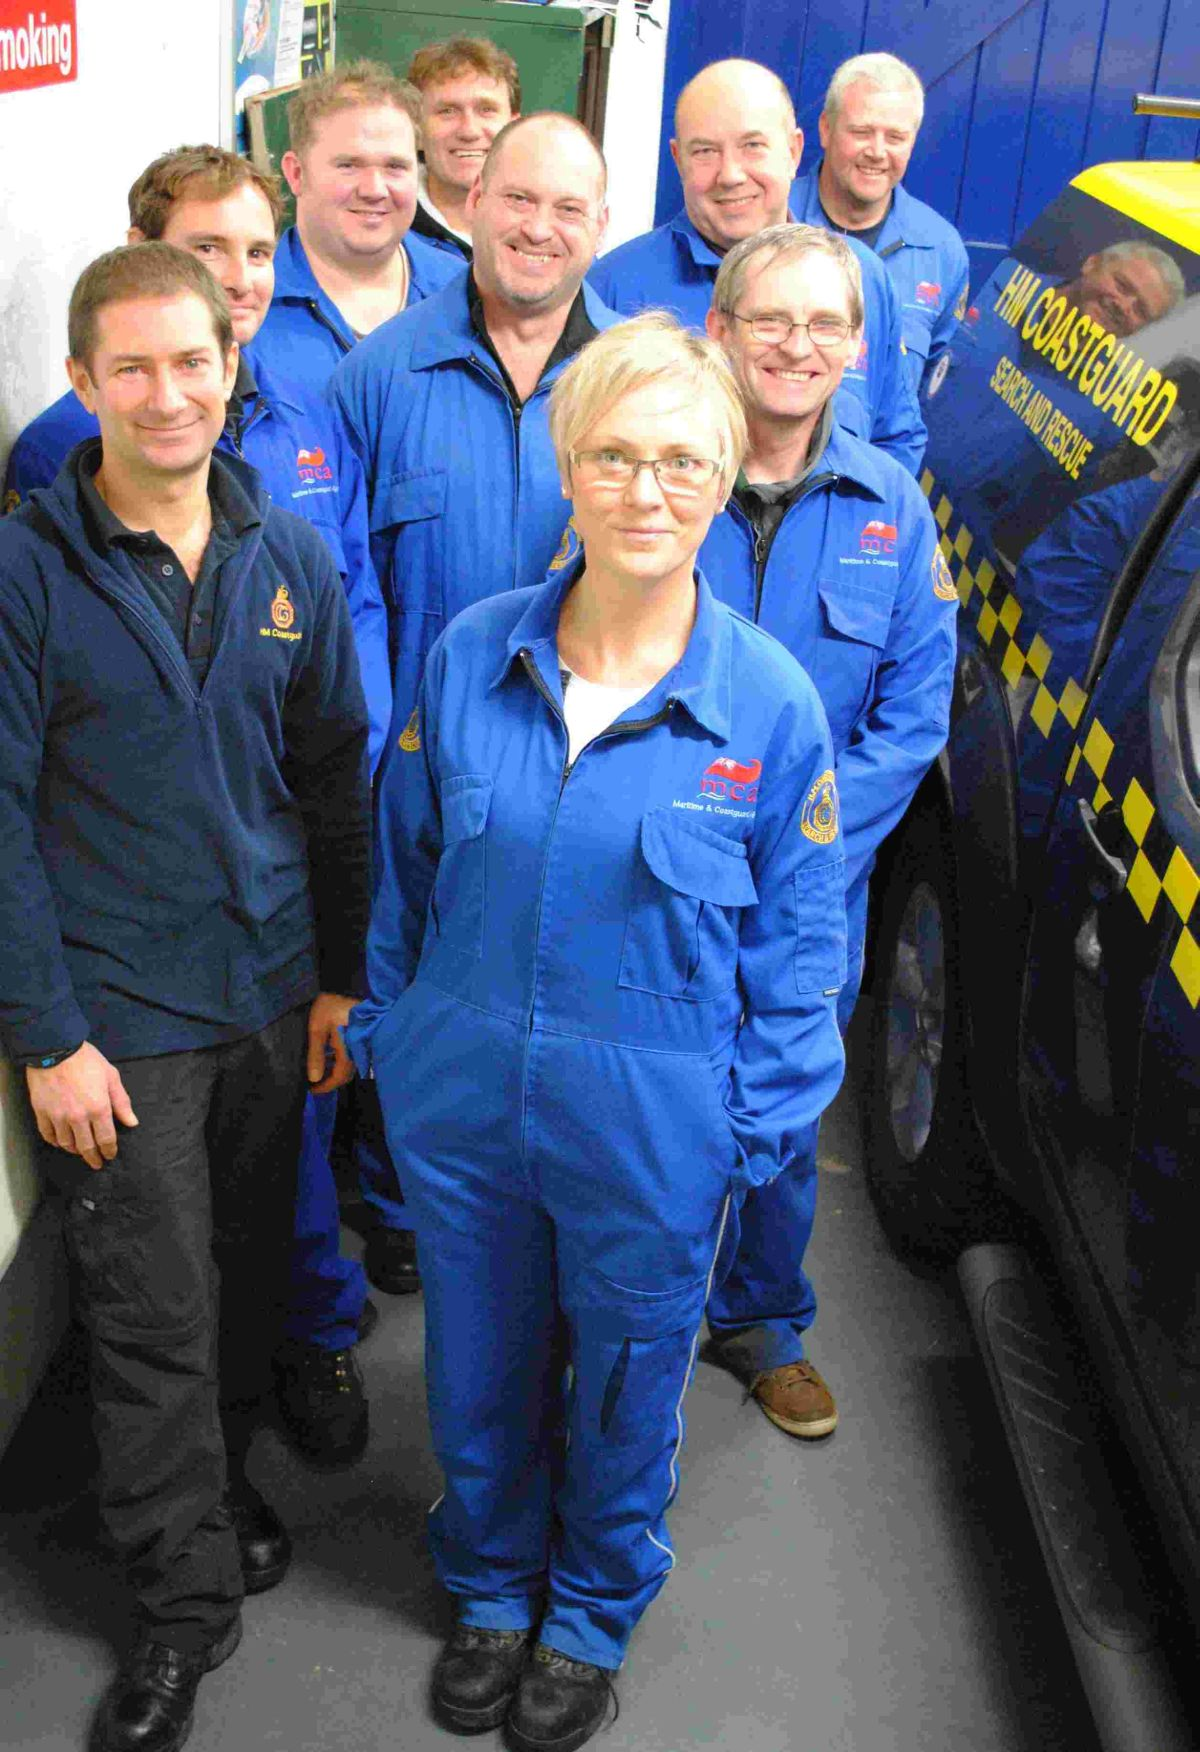 Porthleven woman shows being a Coastguard is not just for men